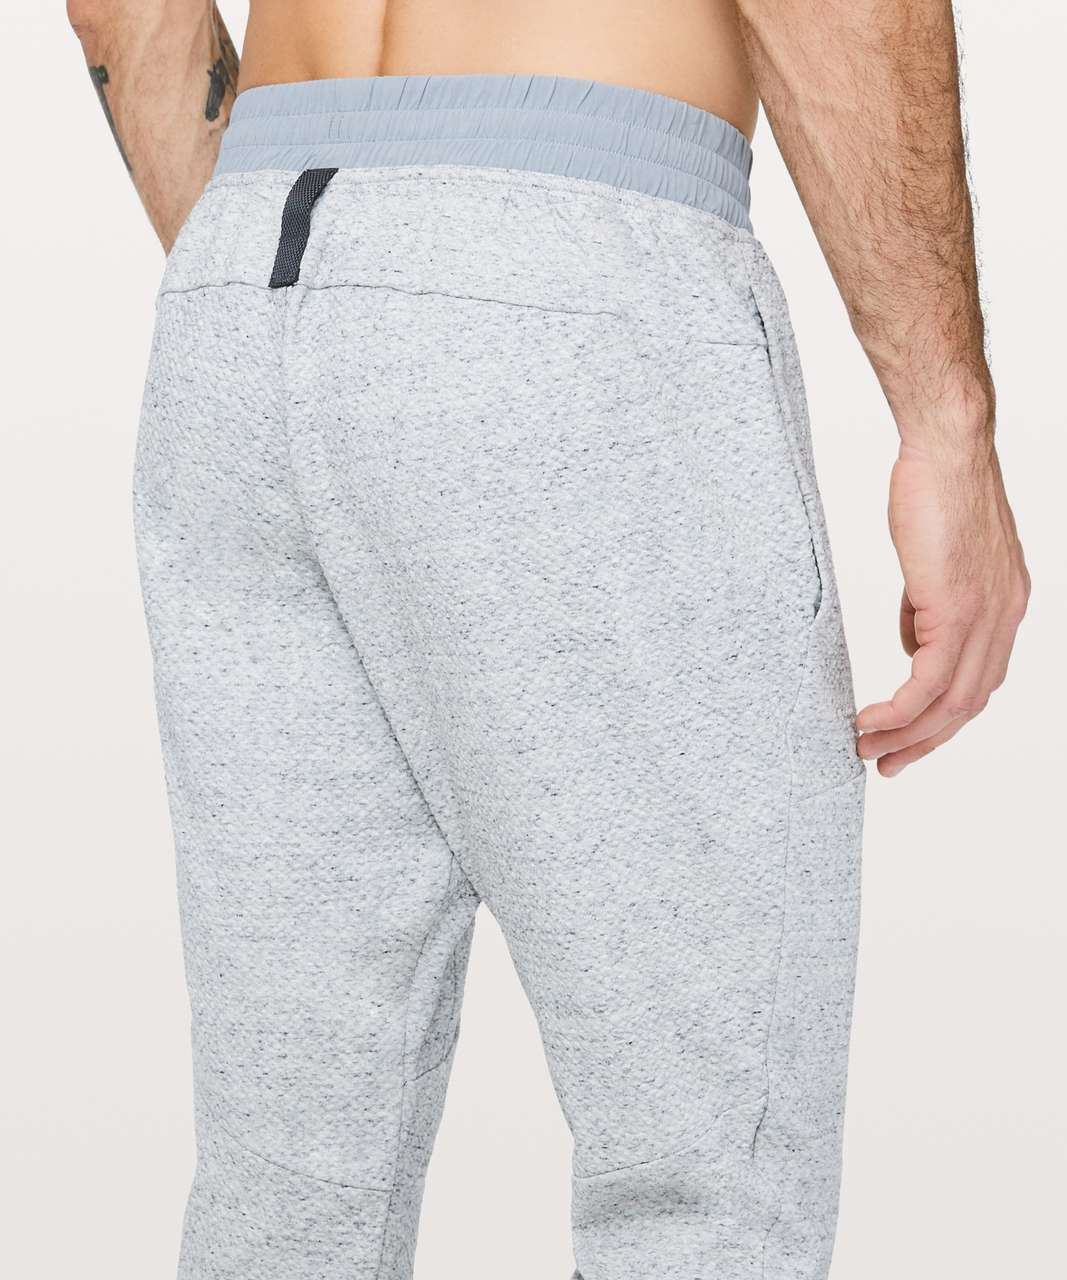 Lululemon At Ease Jogger - Heathered Melody Light Grey / Black